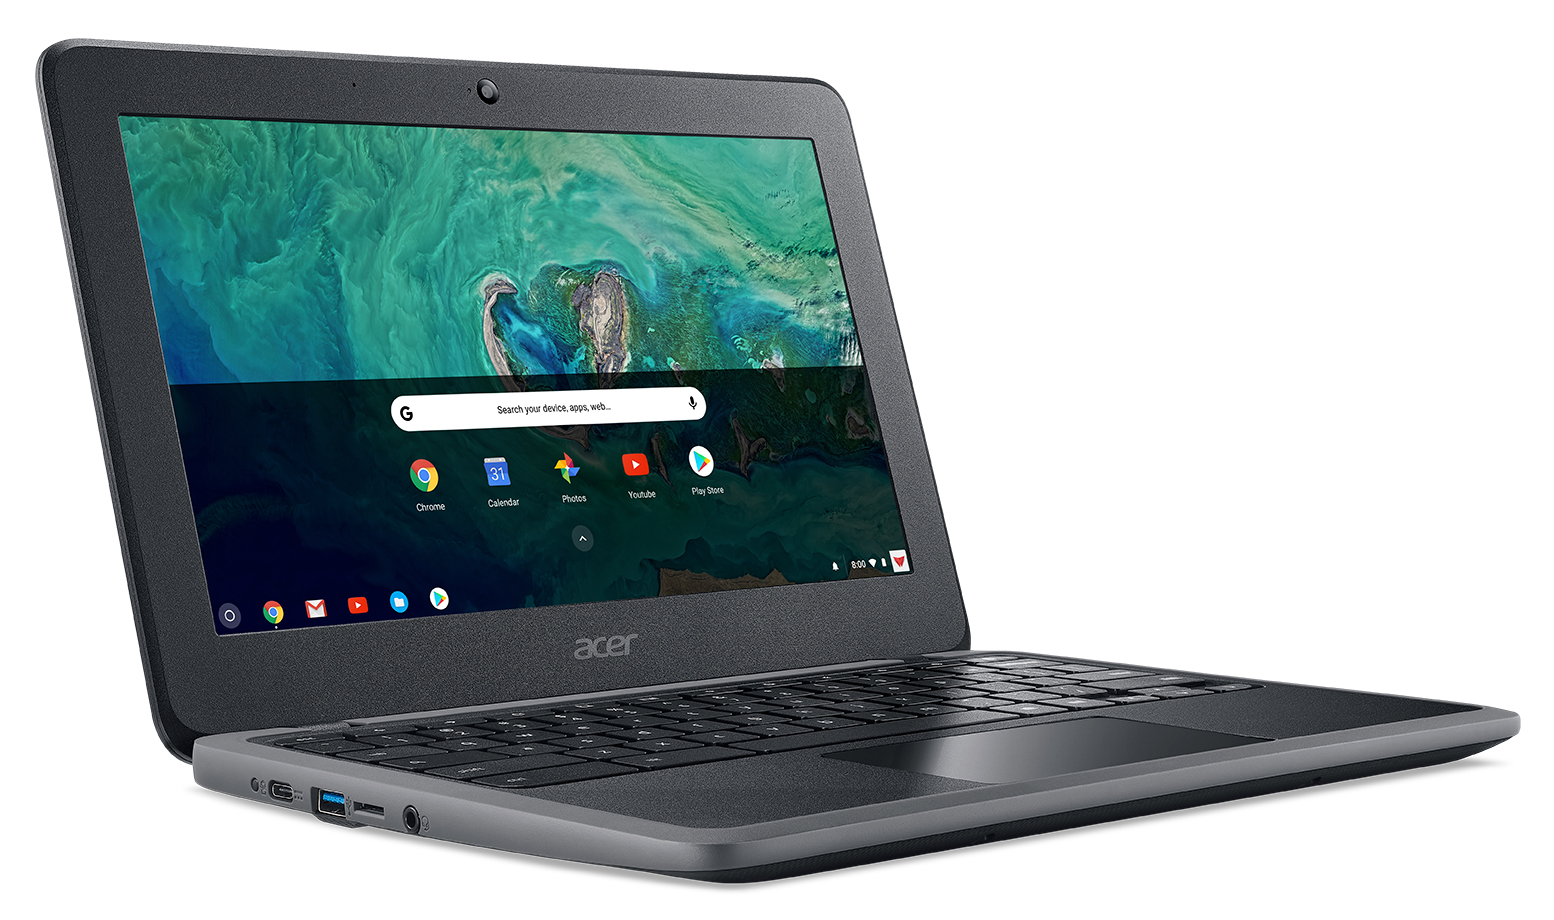 New Acer Chromebooks, Chromebox Designed for Business, Classrooms